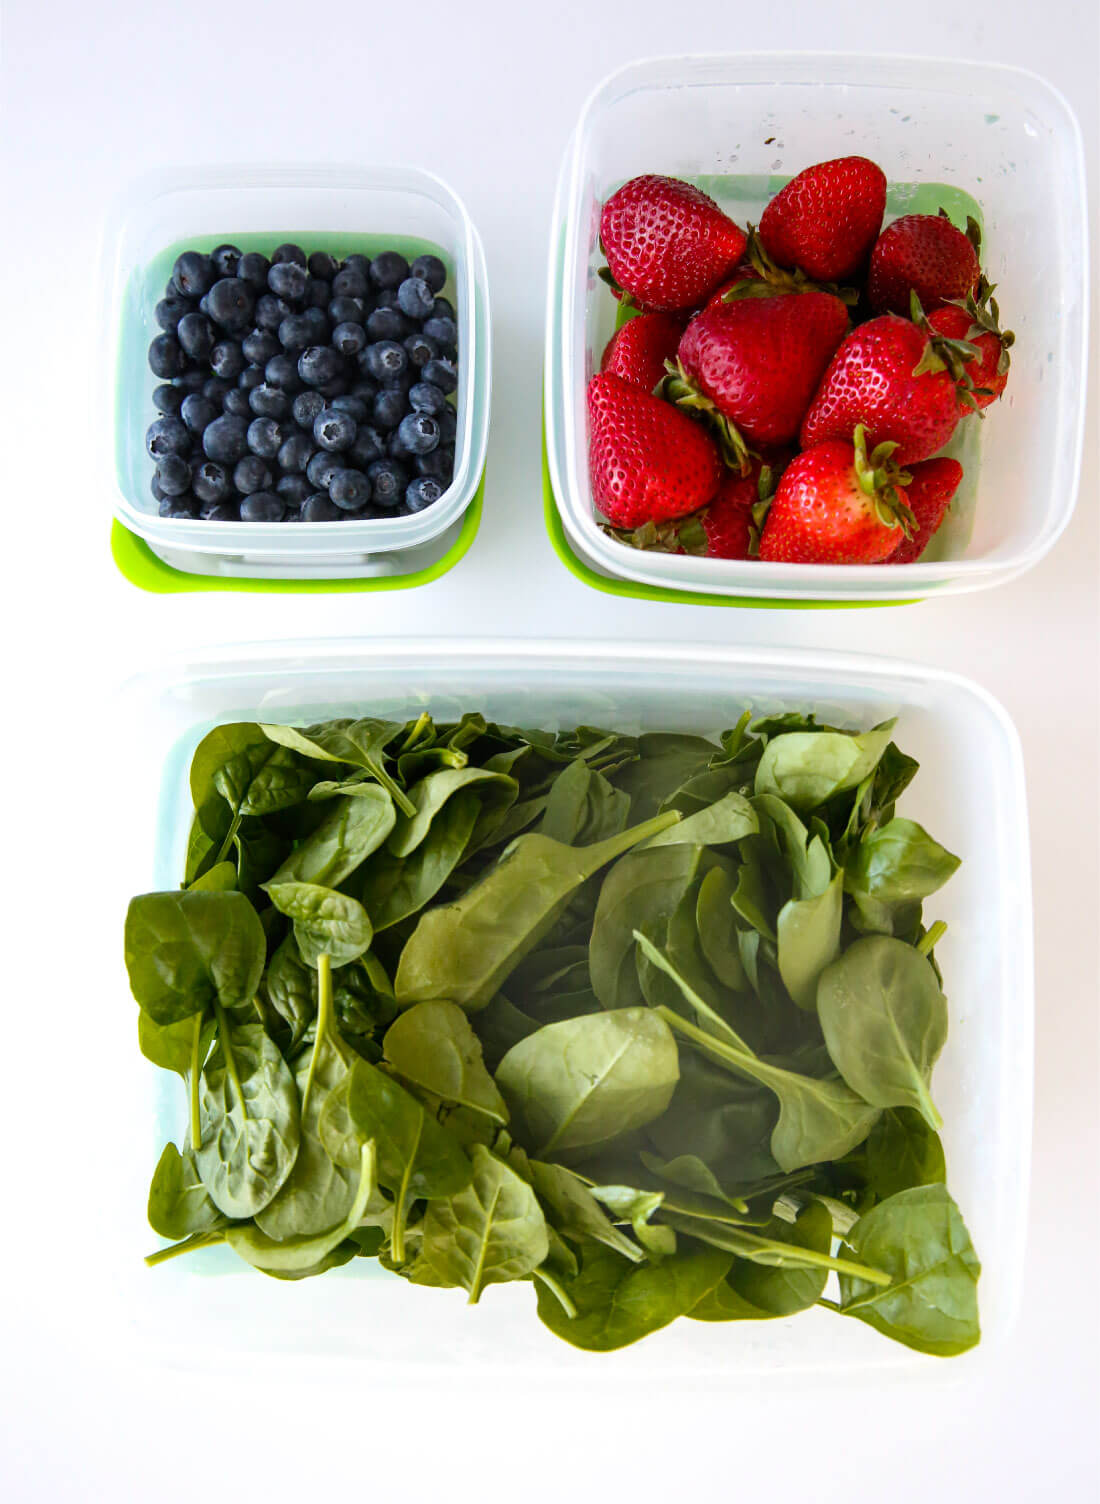 Use the new Rubbermaid FreshWorks ™ Produce Saver to help keep your produce fresher, longer! Coming out of the fridge a week later.